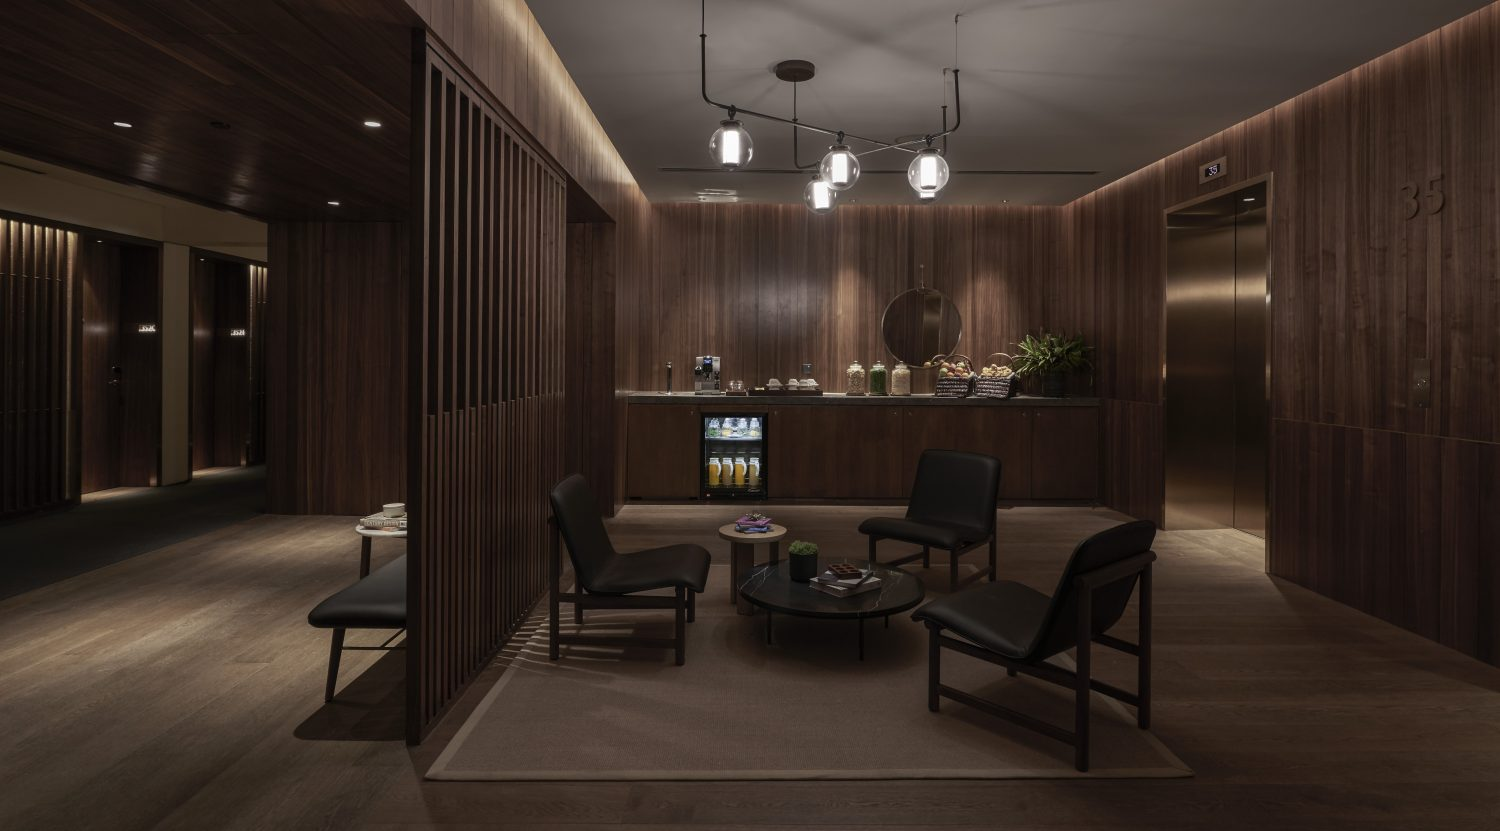 5 Things to Love about Alila Bangsar